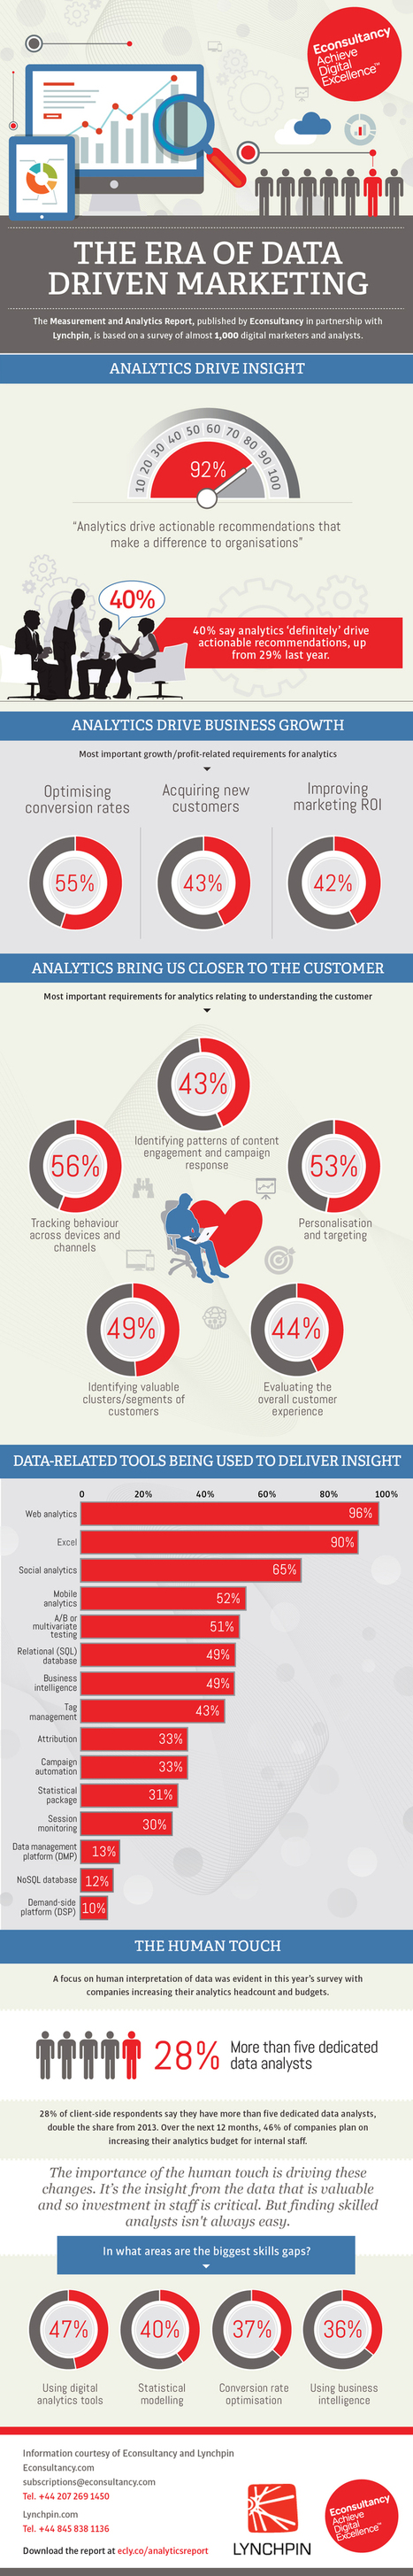 The era of data-driven marketing [Infographic] - Econsultancy   Marketing Technology   Scoop.it